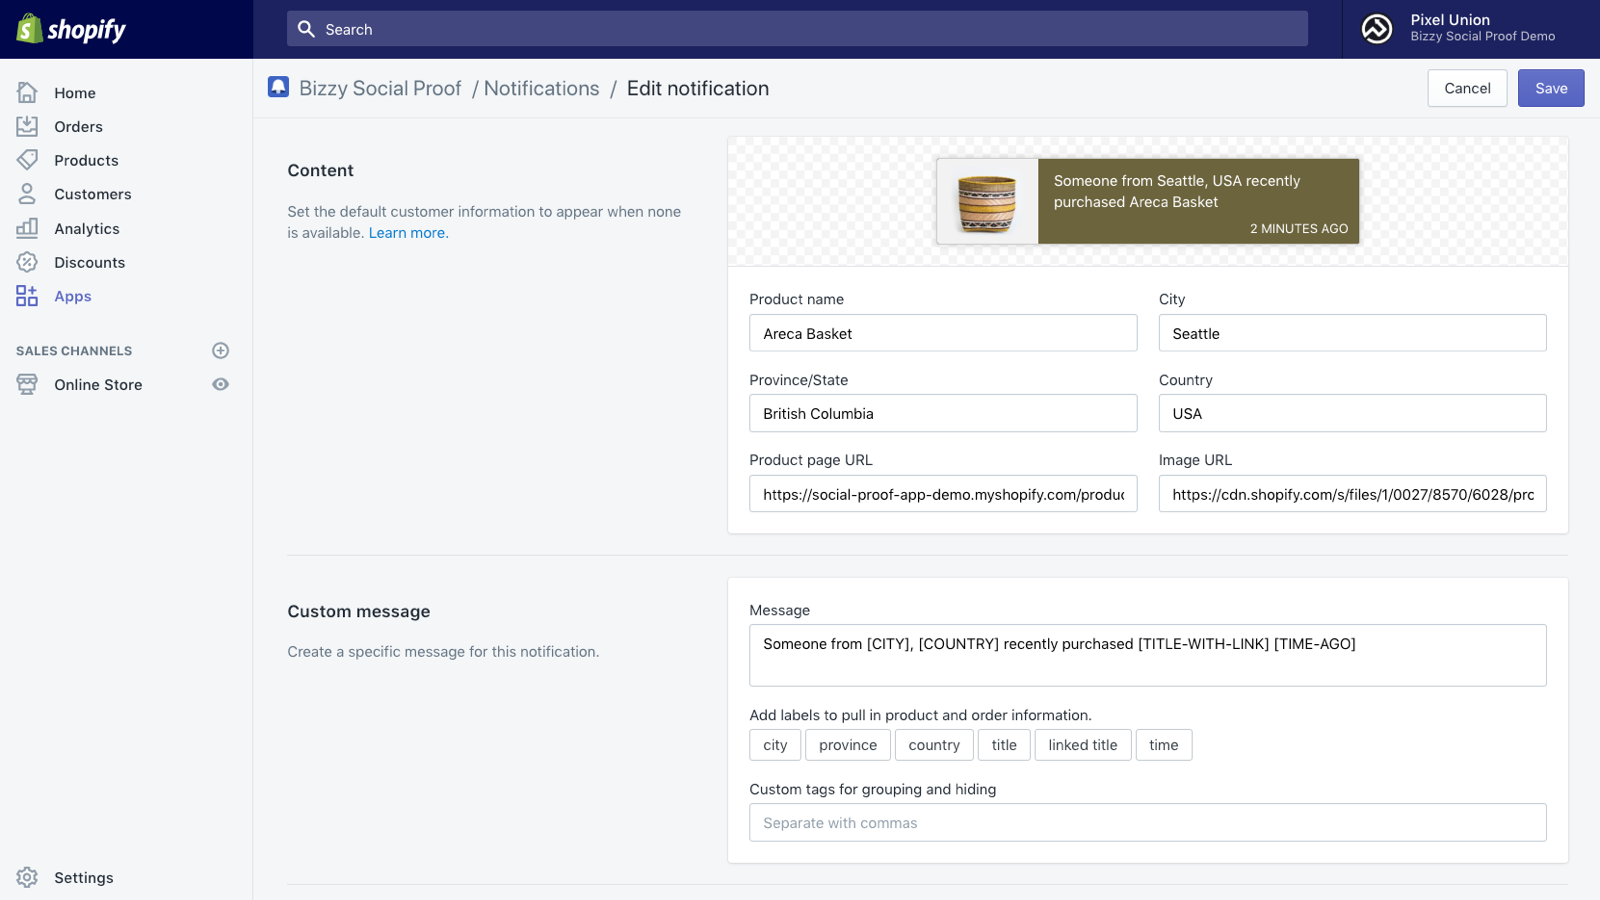 Bizzy Social Proof for Shopify notifications editor.